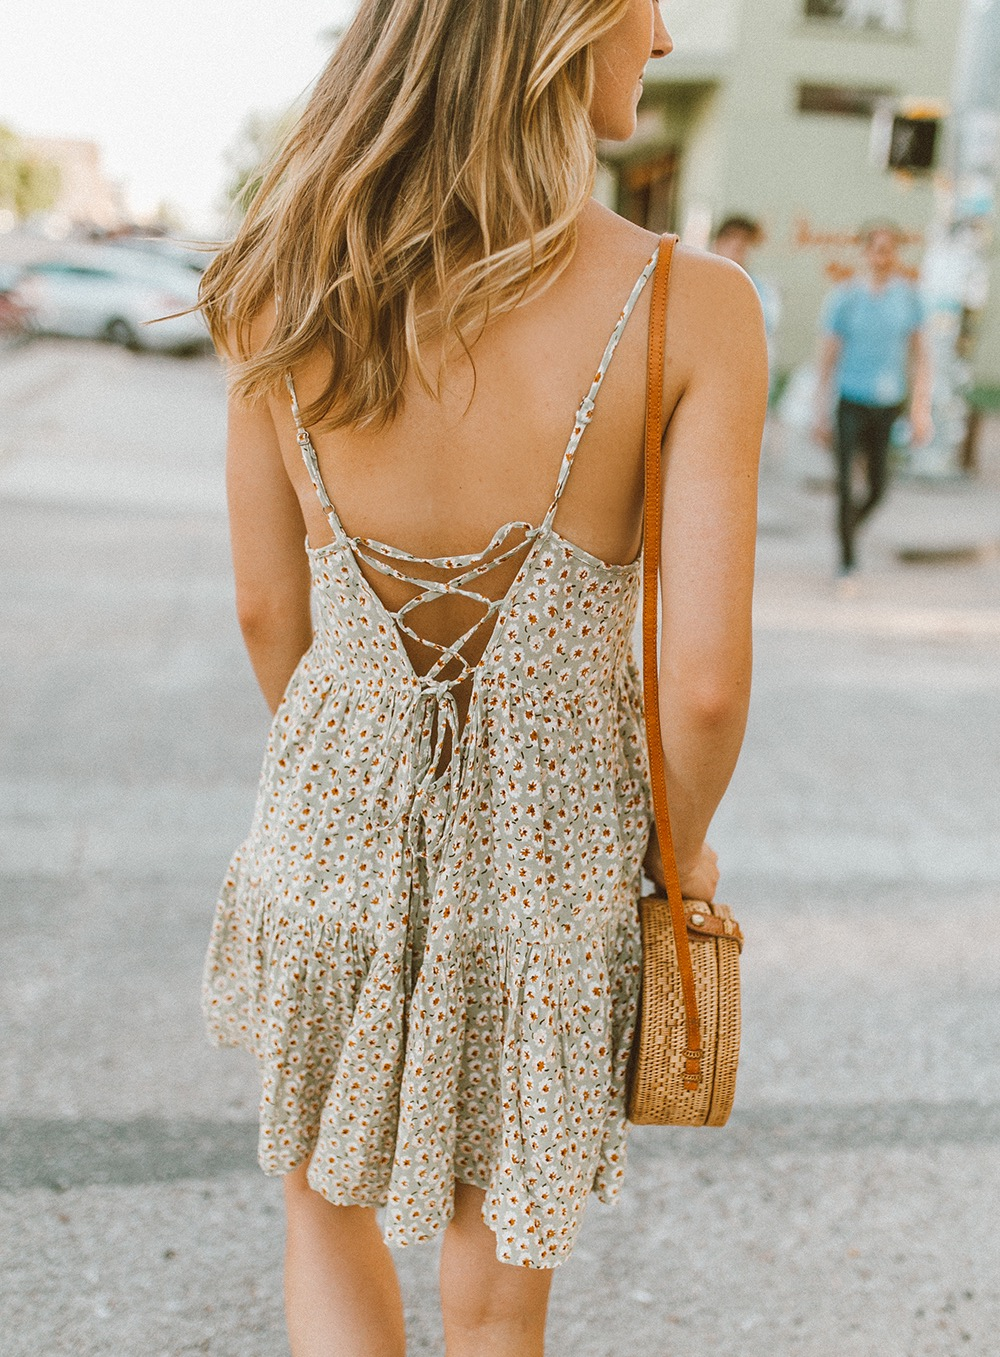 livvyland-blog-olivia-watson-south-congress-i-love-you-so-much-mural-urban-outfitters-harper-babydoll-floral-tie-back-dress-bandana-neck-2